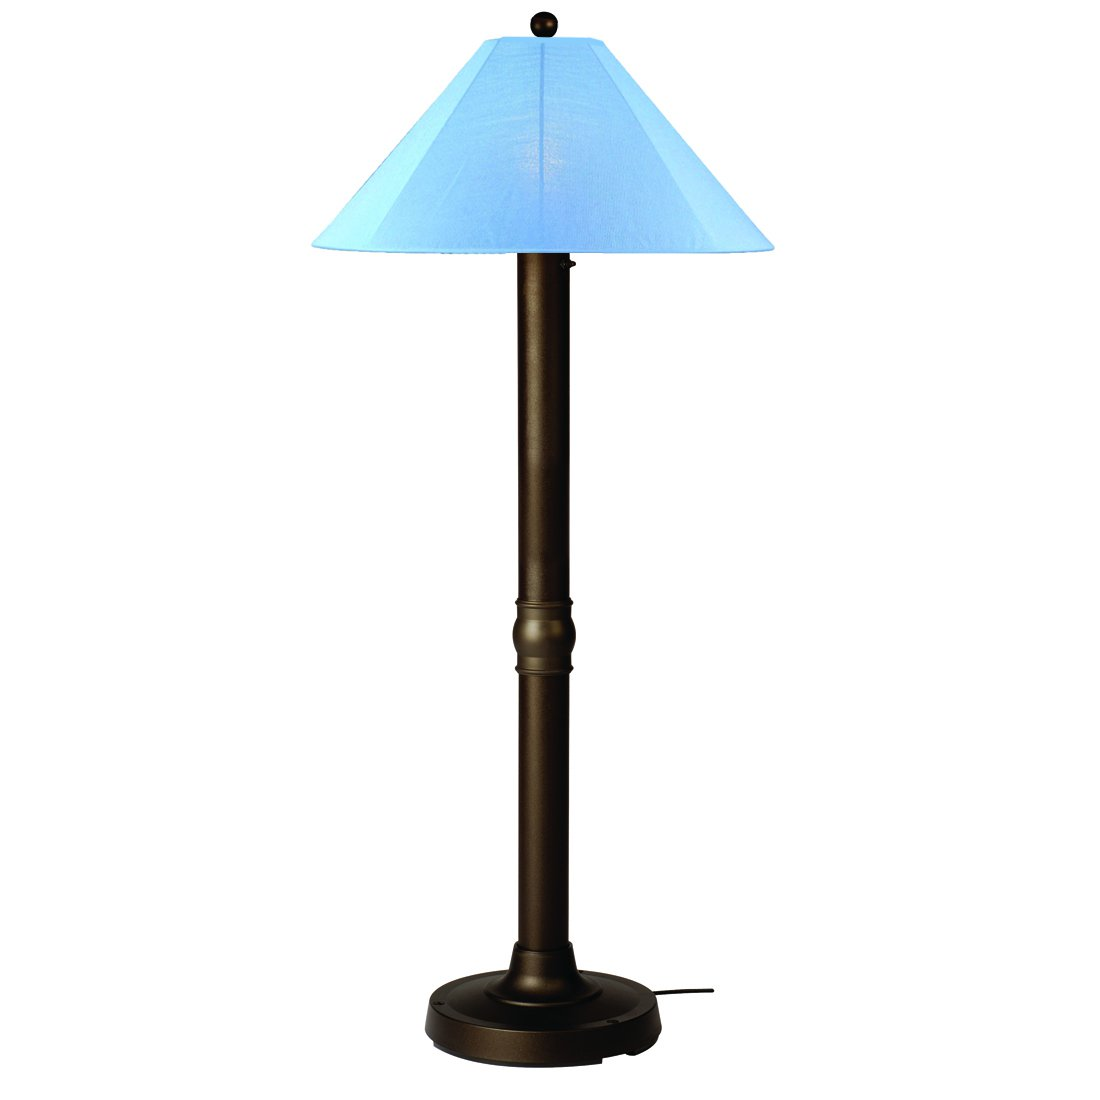 Patio Living Concepts Catalina 62 Inch Floor Lamp w  3 Inch Bronze Body & Sky Blue Sunbrella Shade Fabric by Patio Living Concepts